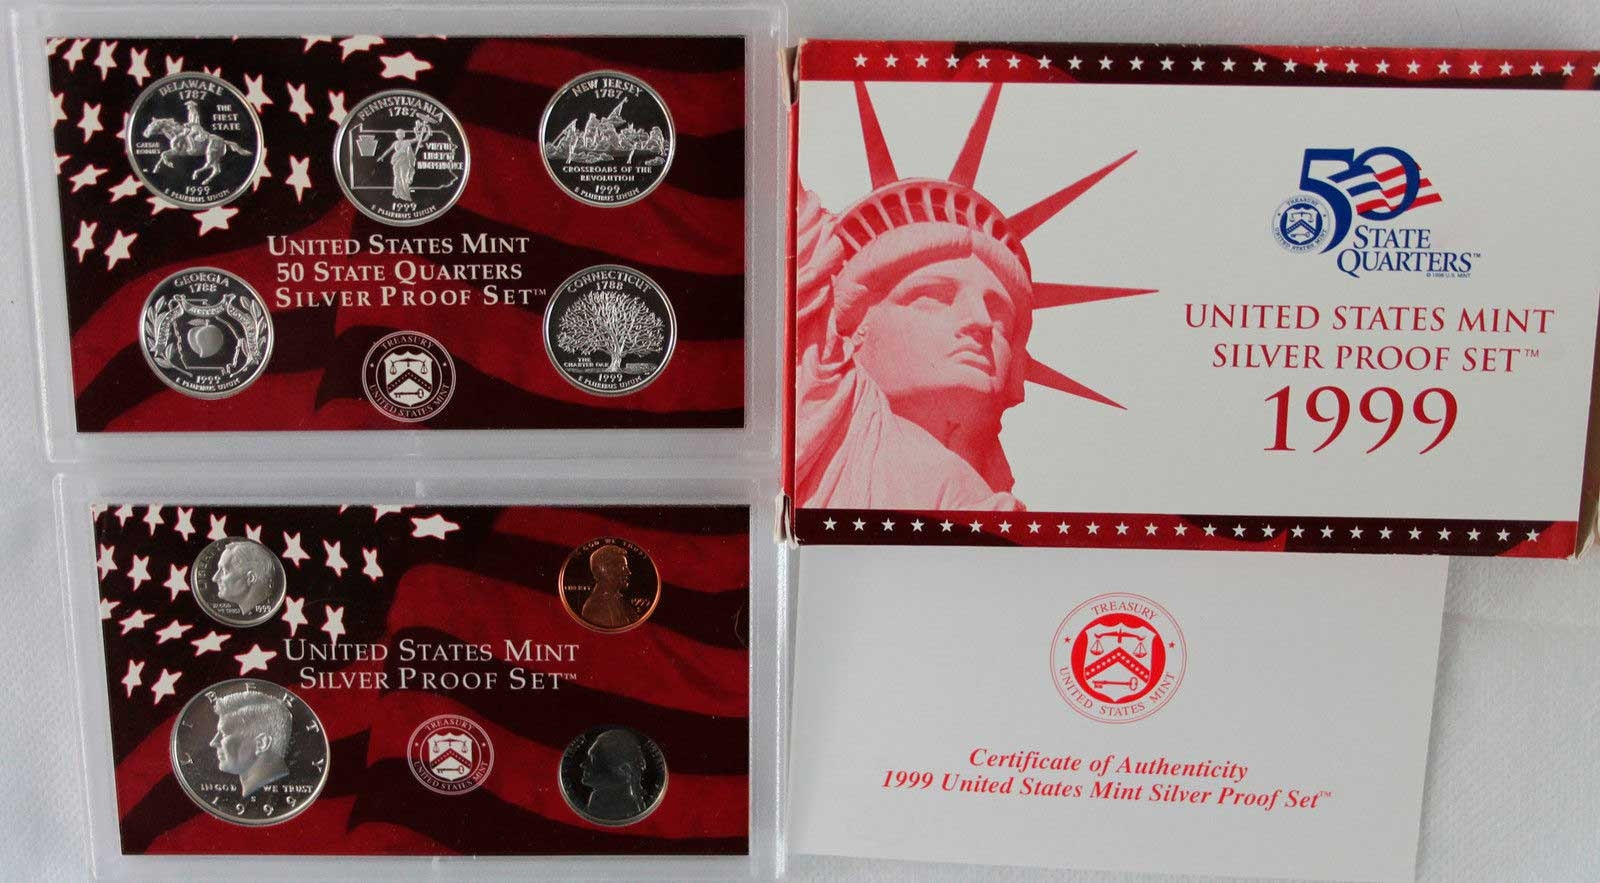 Quarter silver Proof Set